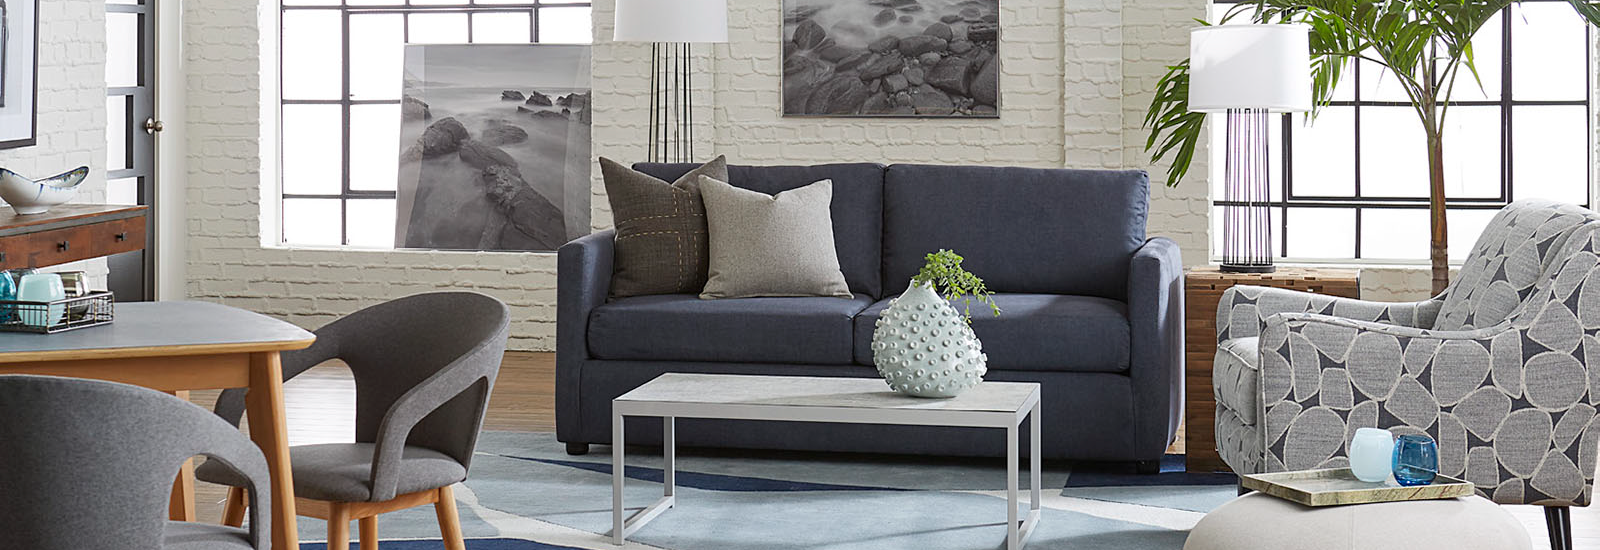 7 Expert Tips for Incorporating Furniture Rental For Staging